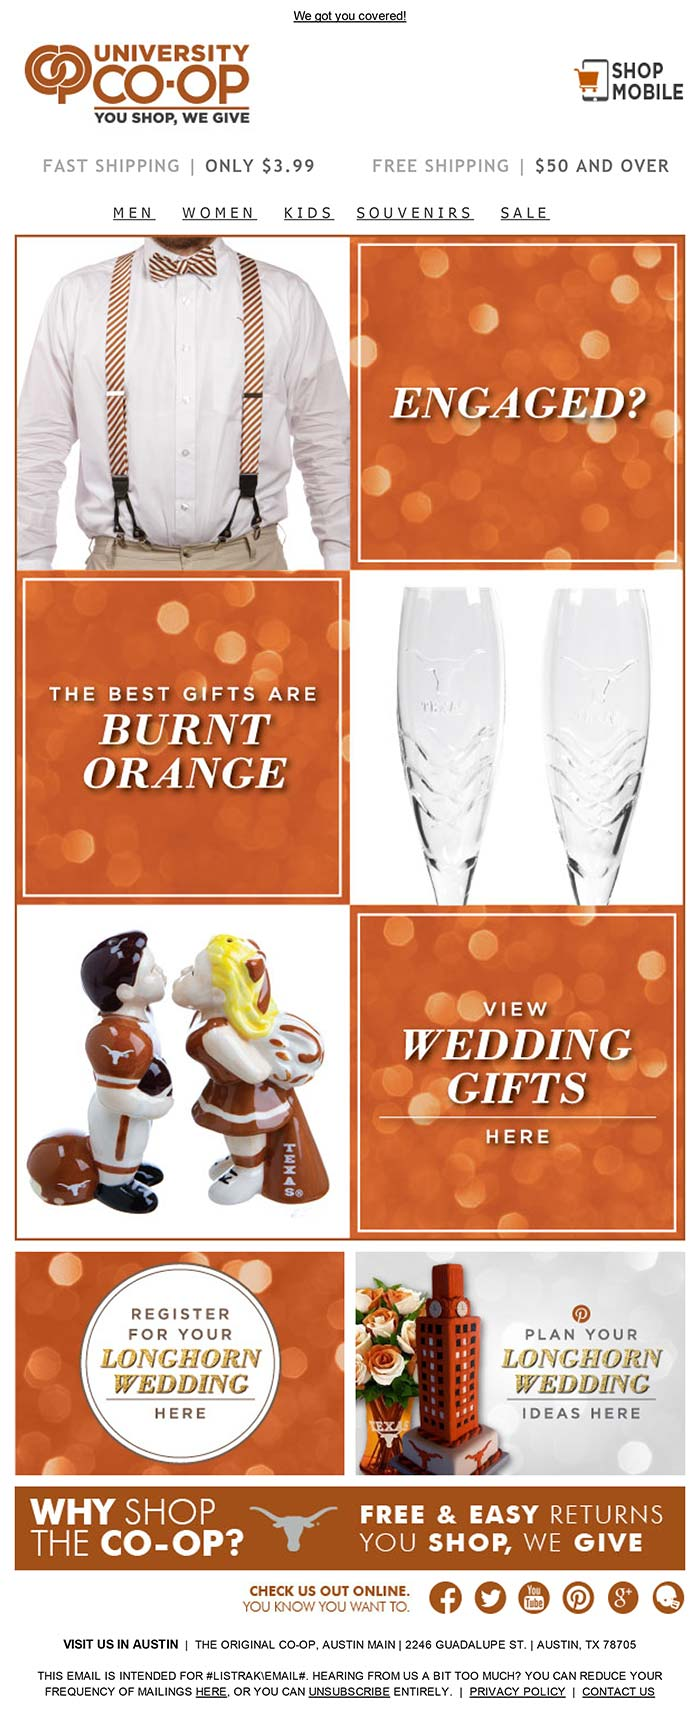 Longhorn Wedding Email